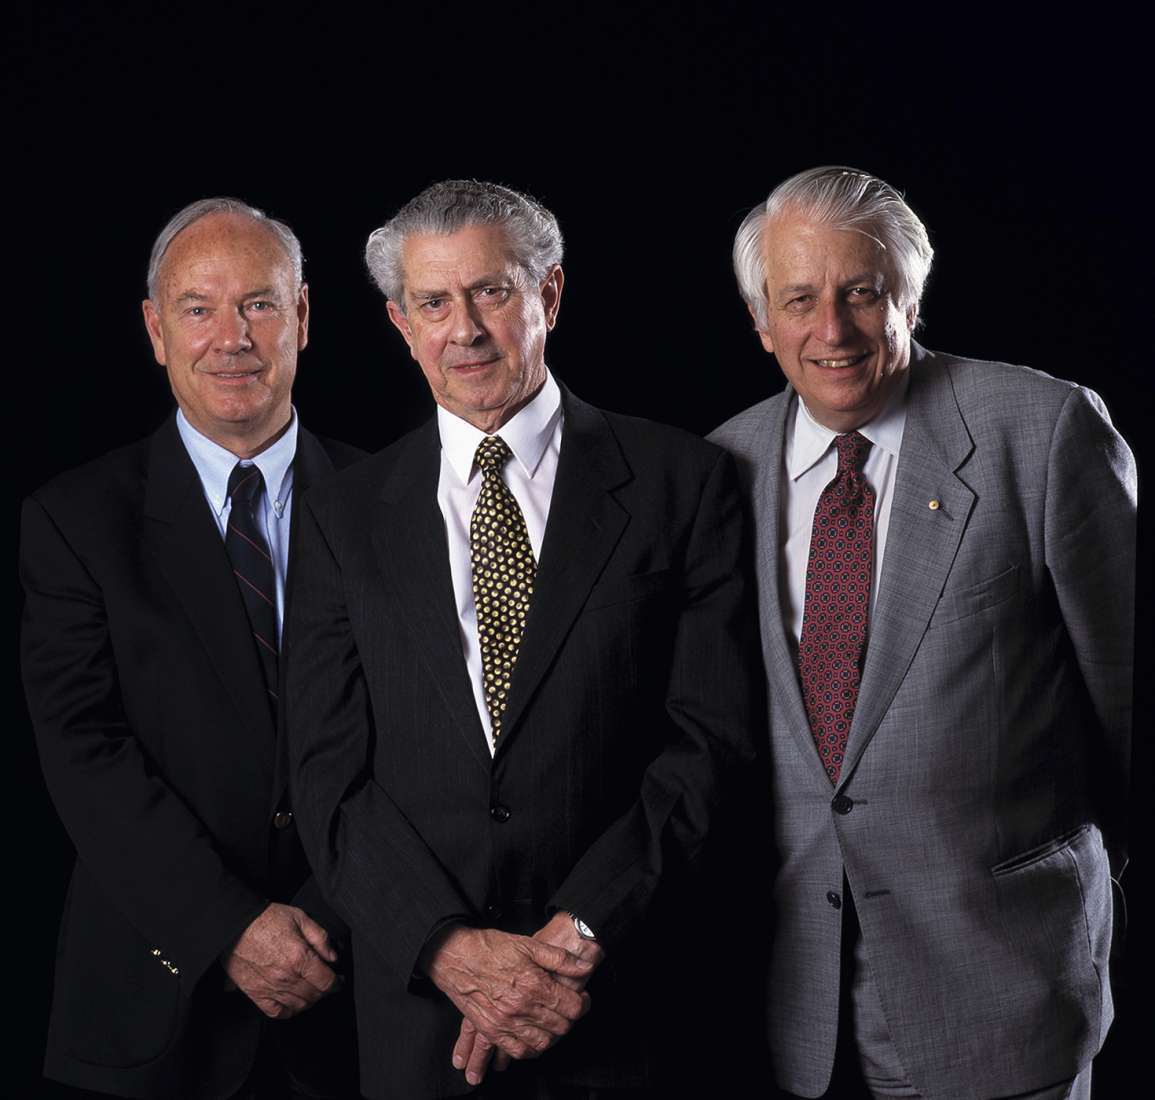 Colour portrait of the retired professors against a black background.